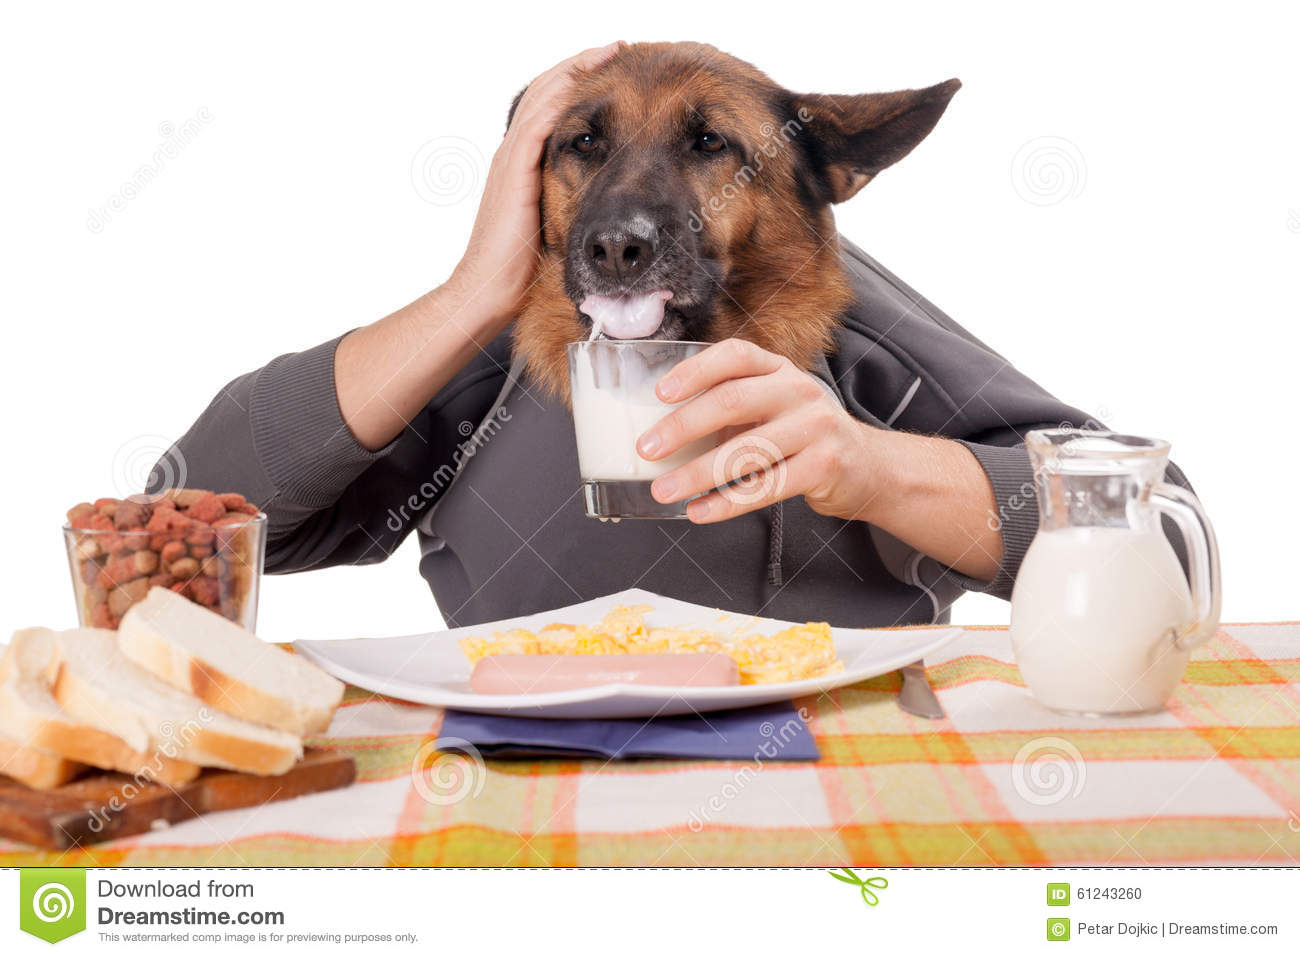 nashville area map with Stock Photo Funny German Shepherd Dog Human Arms Hands Drinking Mi Concept Dogs Food Time Breakfast Isolated White Image61243260 on LocationPhotoDirectLink G153510 D530105 I18835518 Dreams Puerto Aventuras Resort Spa All Inclusive Puerto Aventuras Yucatan also Lot 701 Persian Tekke Turkoman Bokhara Rug 42 X 33 moreover Cumberland River Map together with Nashville State  munity College Master Plan moreover 2015 Library Design Showcase.